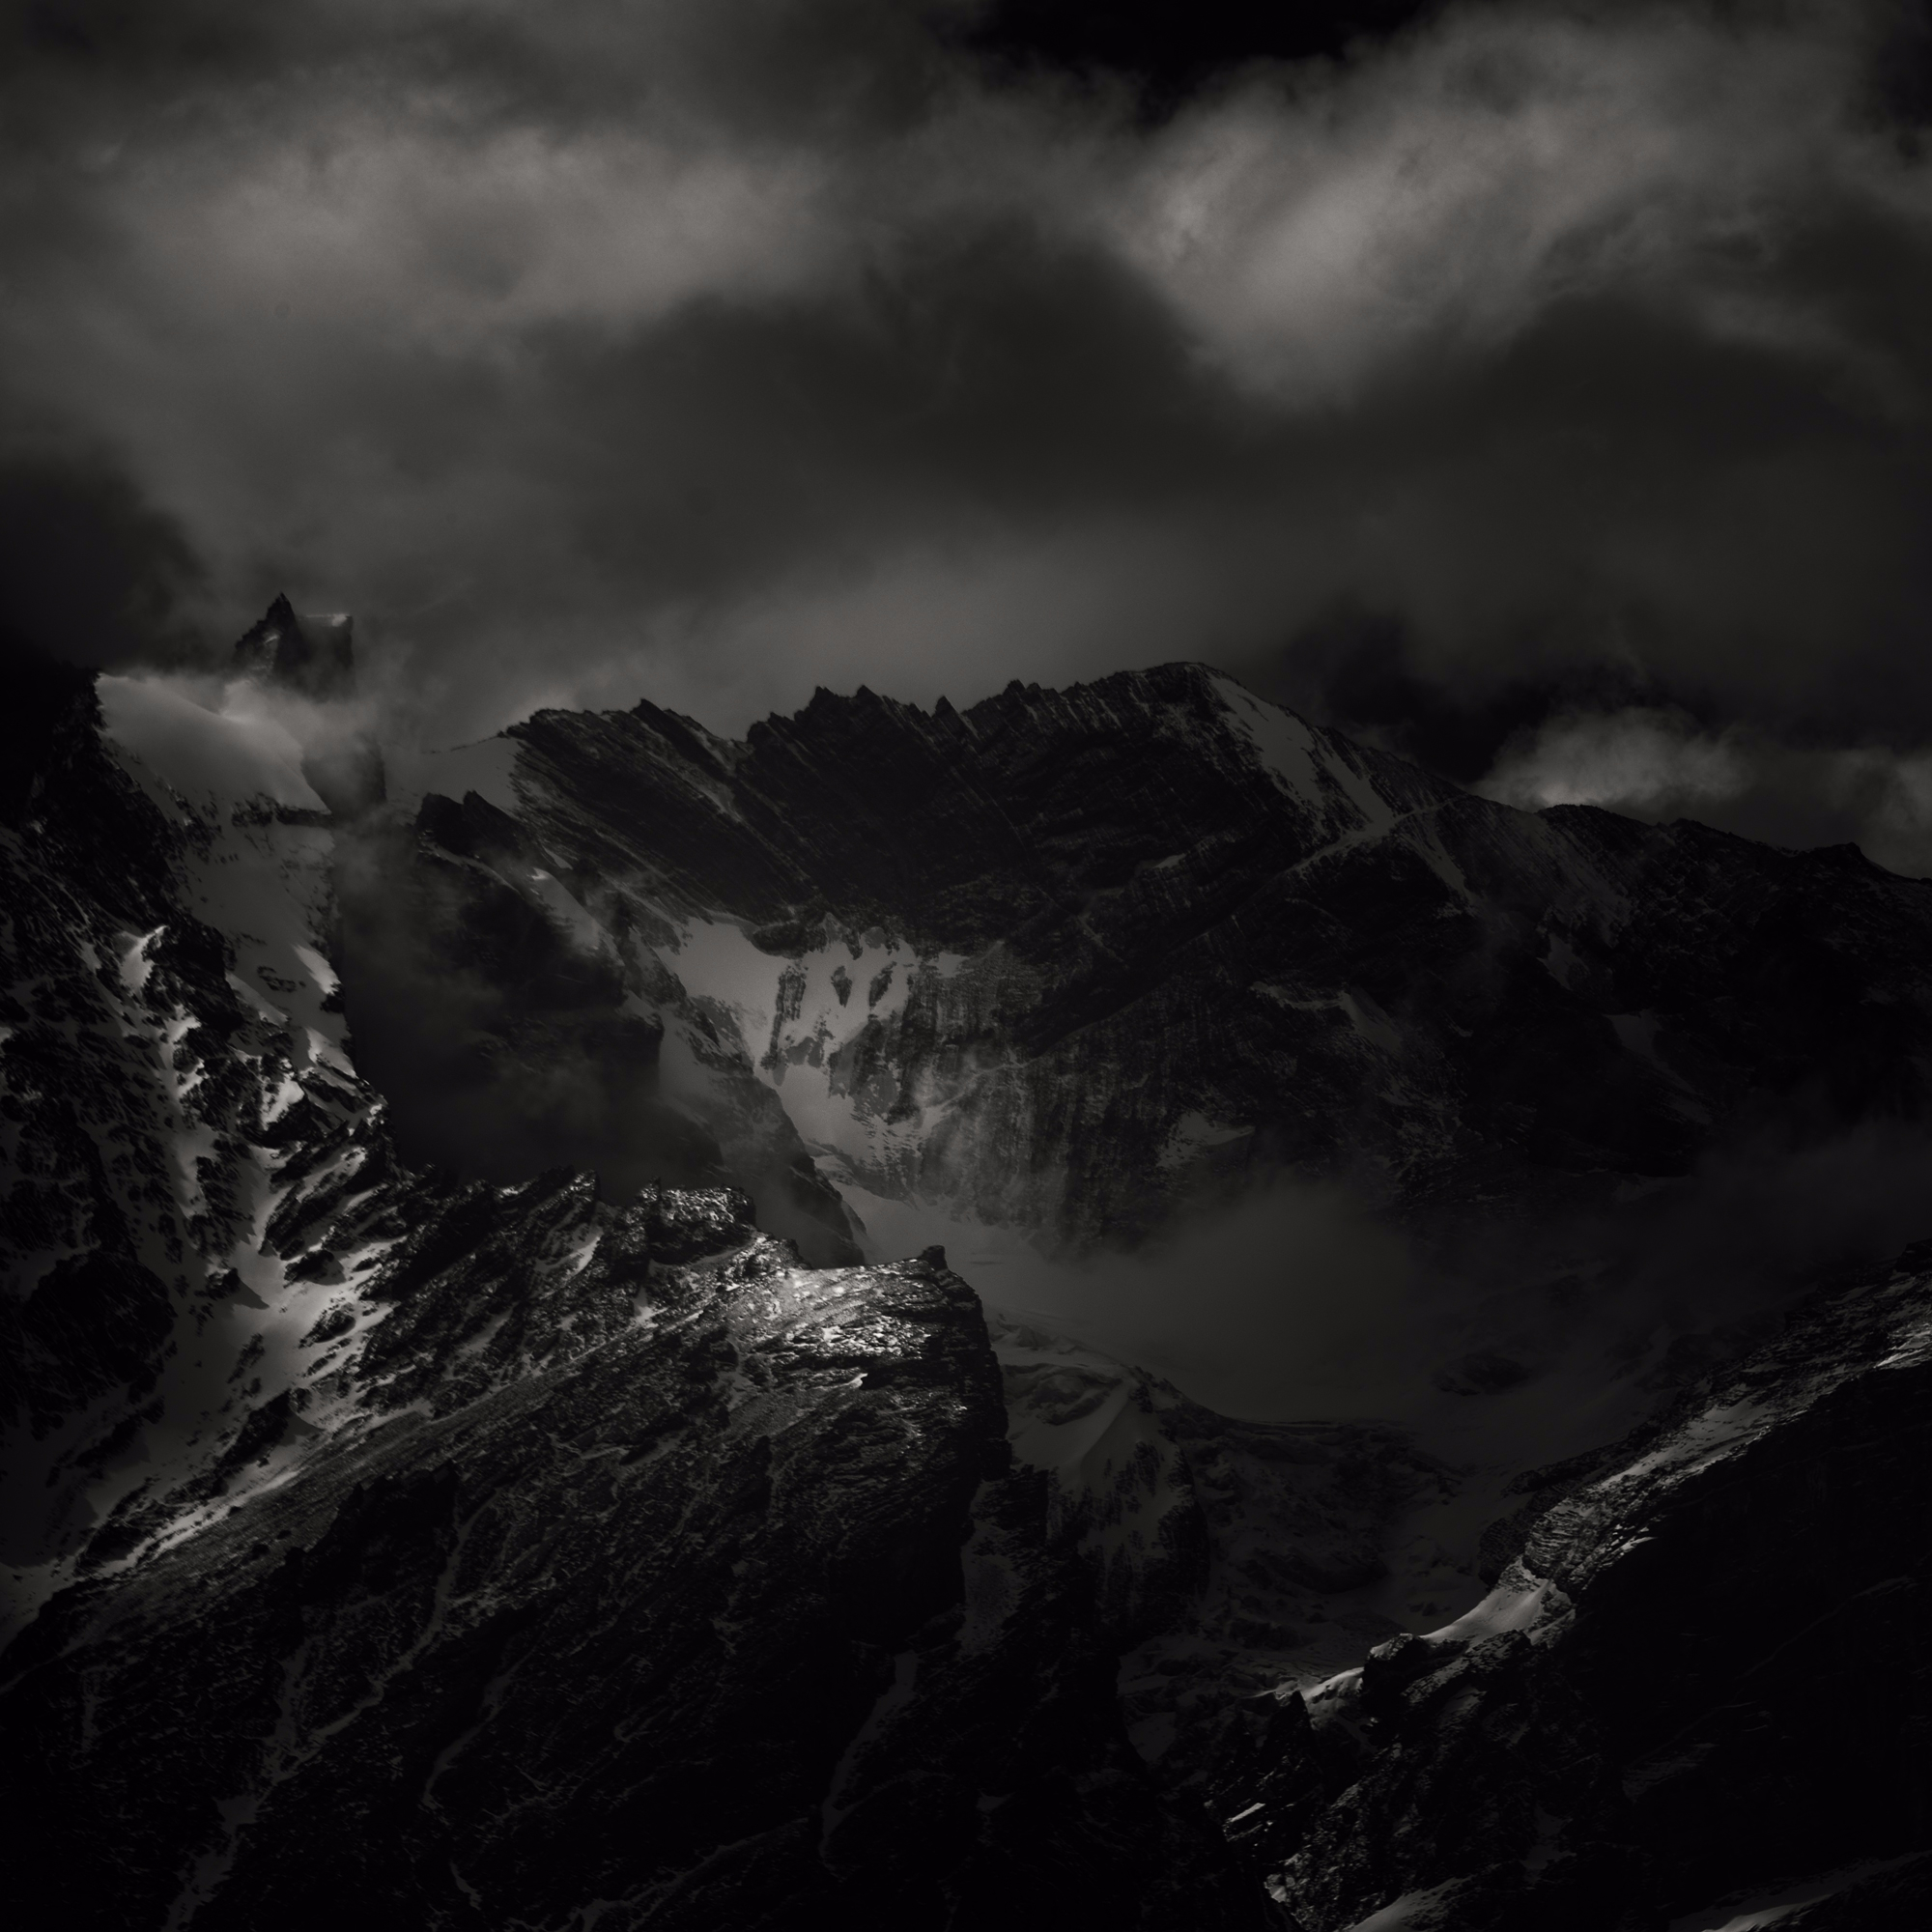 brewing - patagonia, infrared, chile - andyleeuk | ello